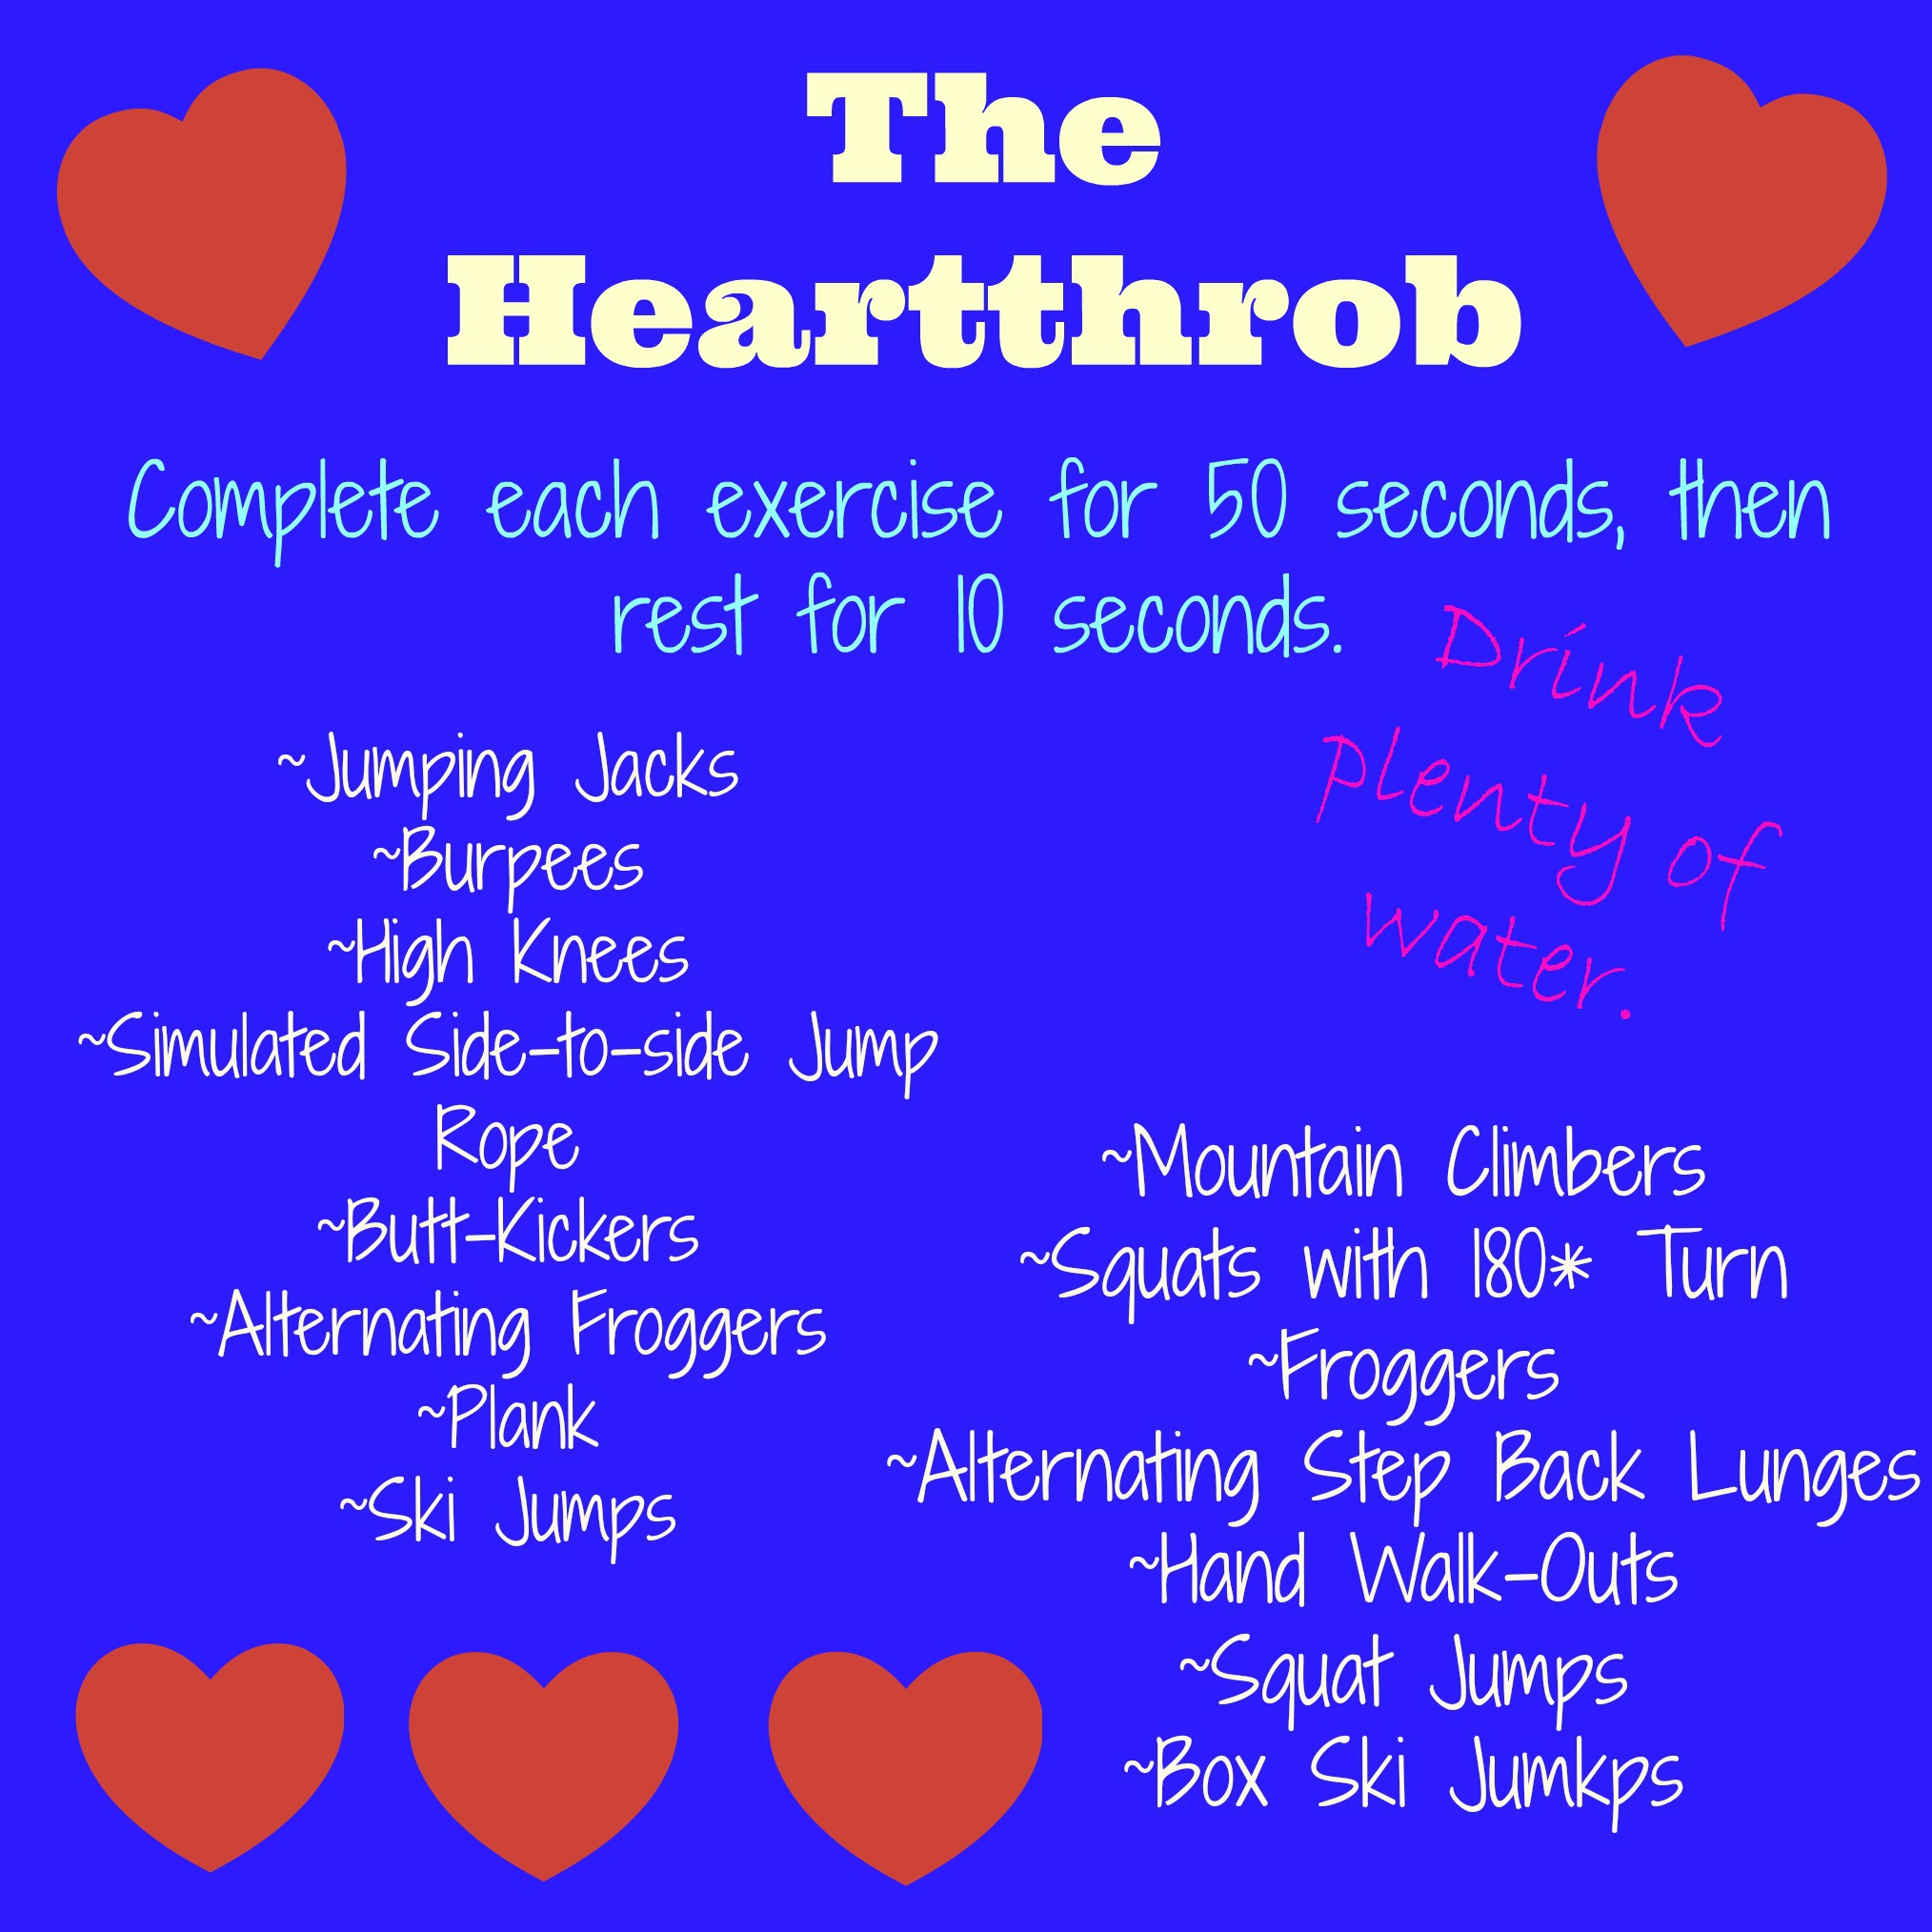 The Heartthrob